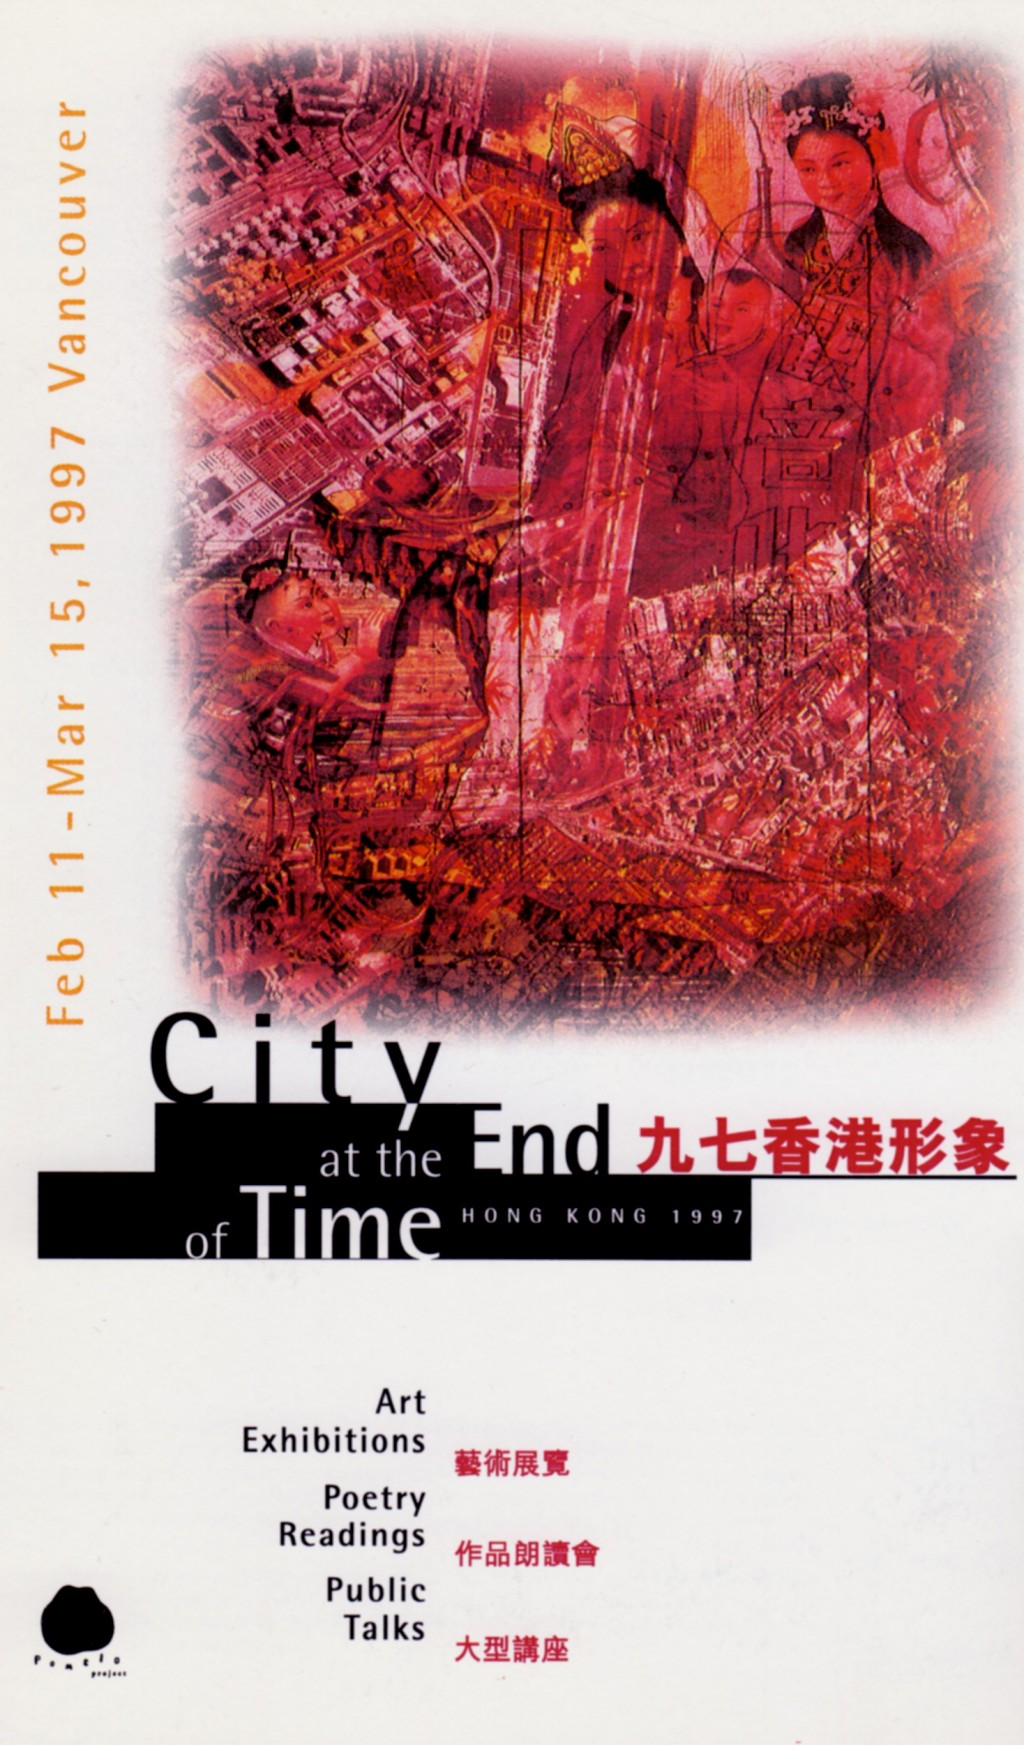 City at End of Time brochure cover